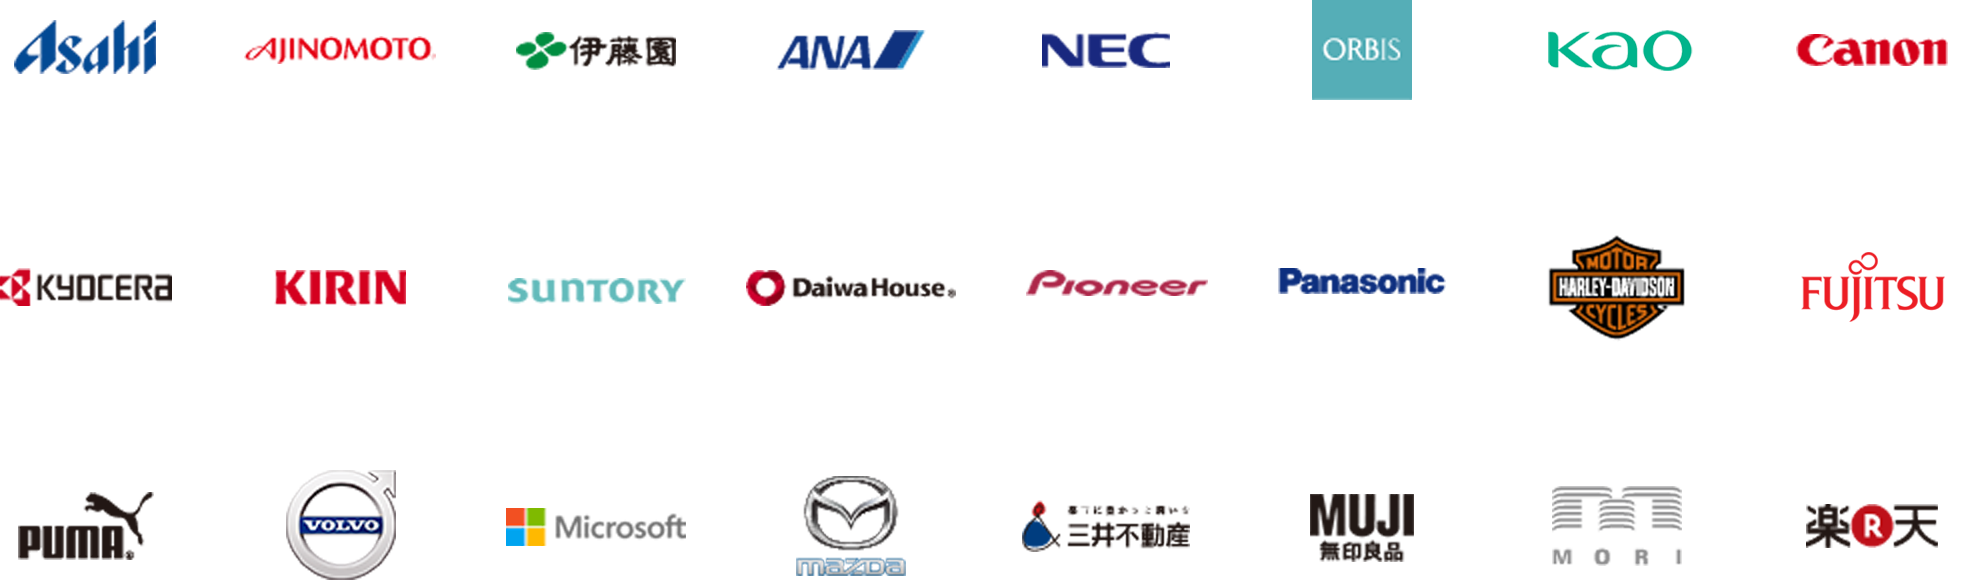 Our Clients' Logos